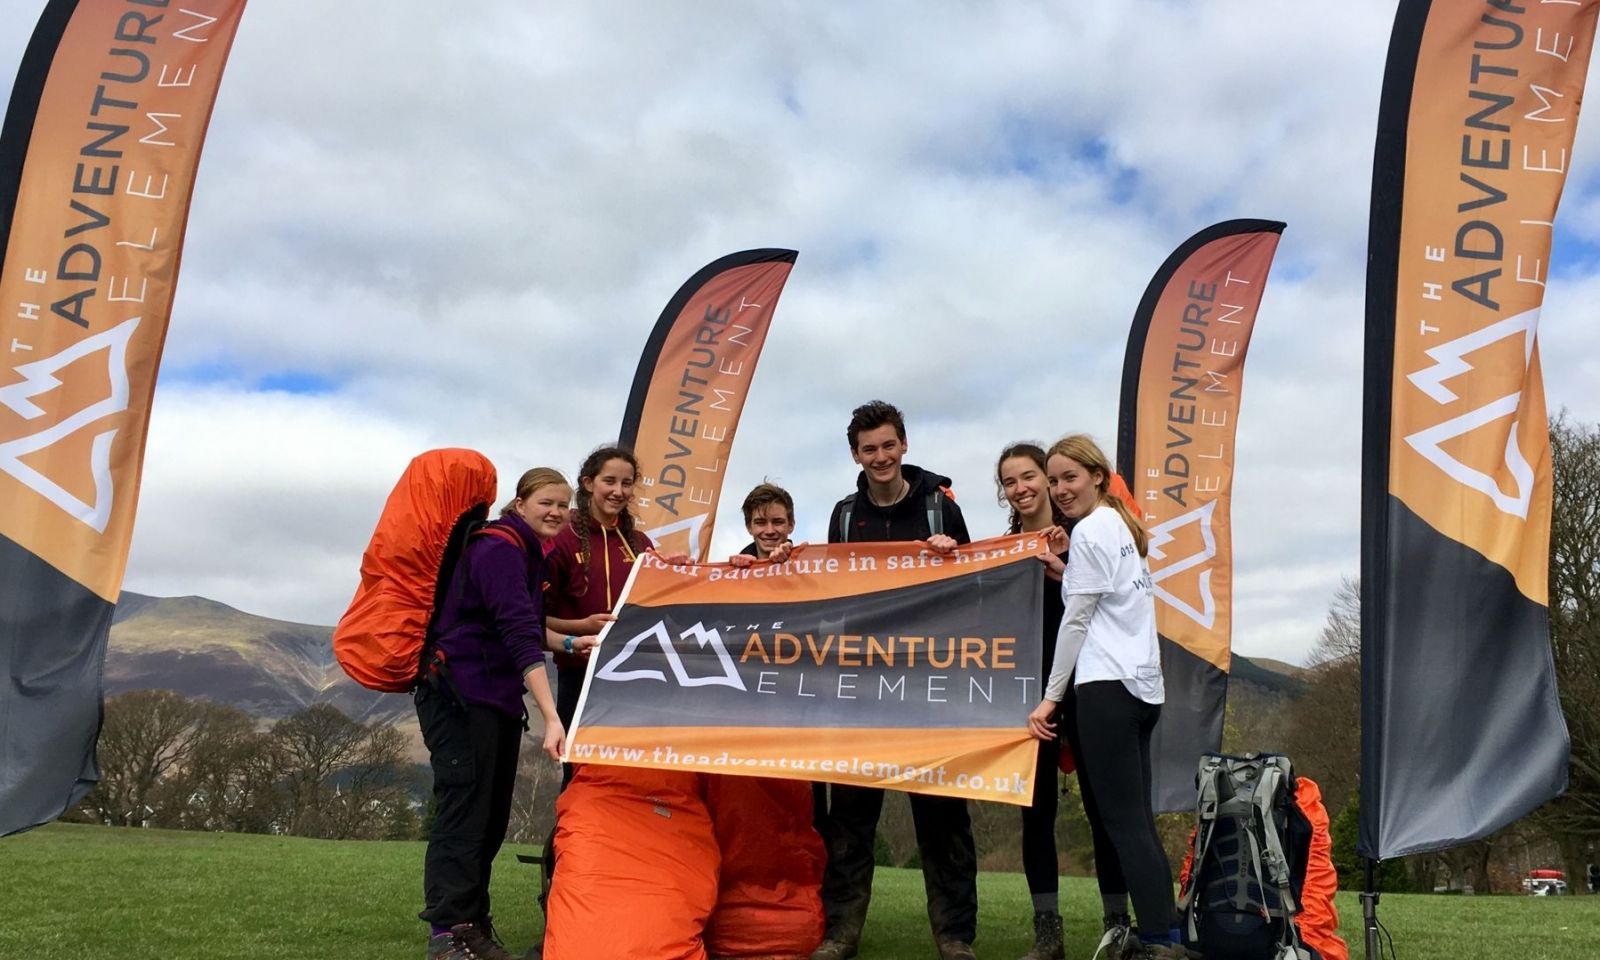 Group of DofE participants stand in front company flag and holding The Adventure Element flag.